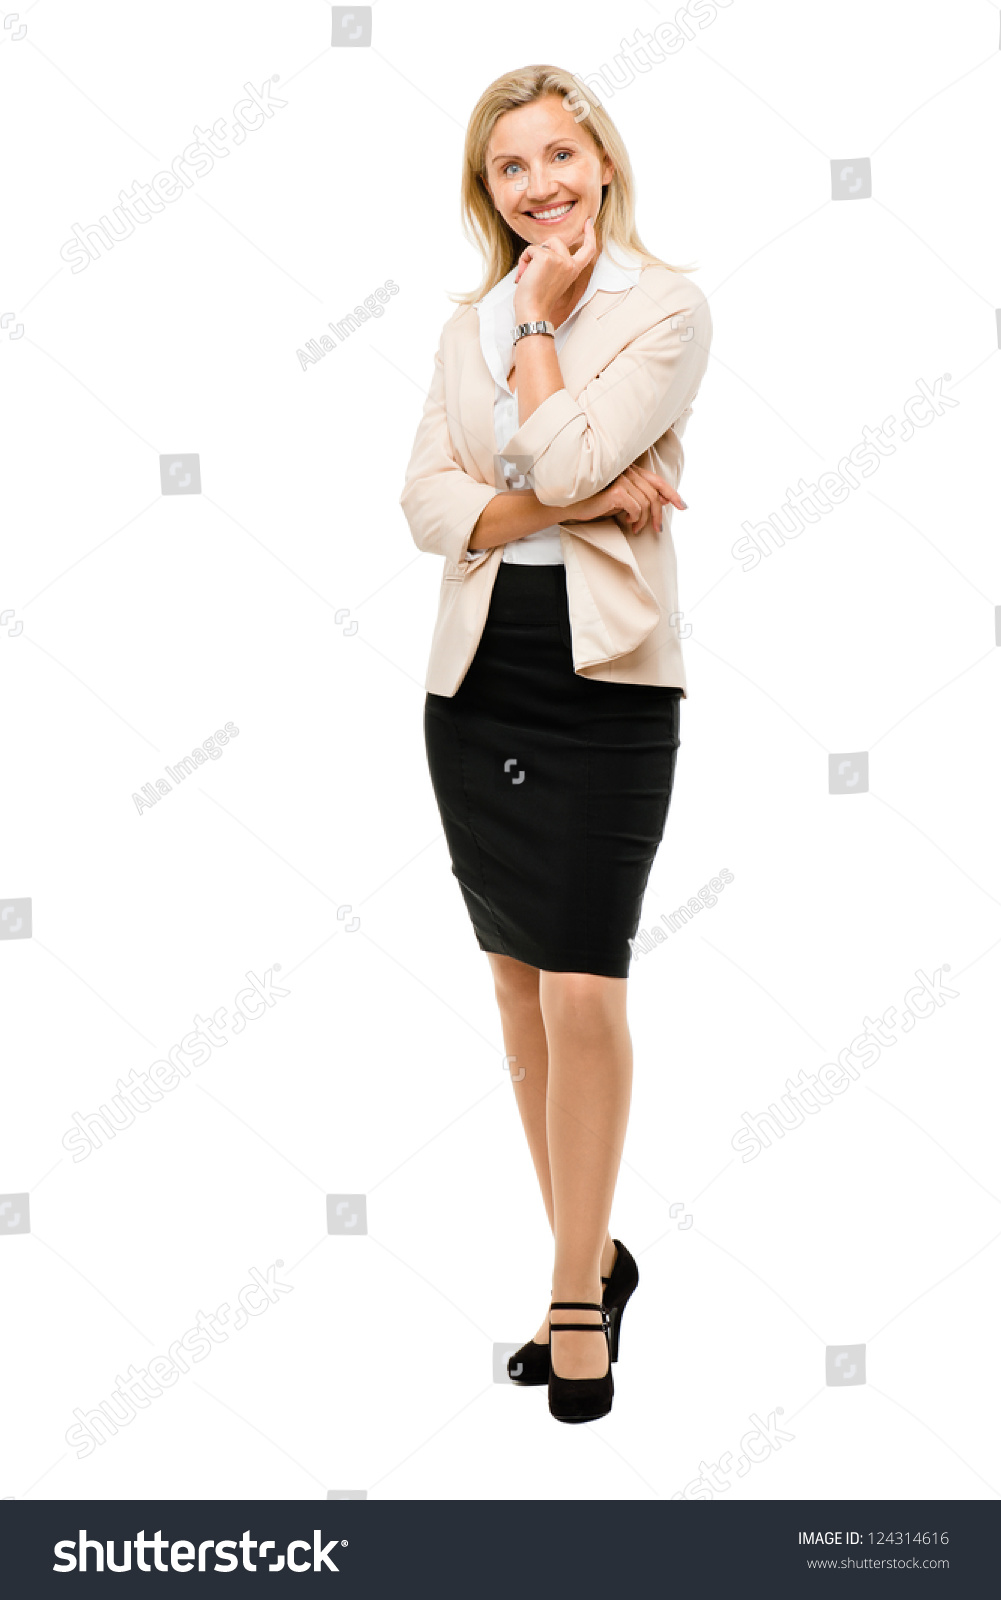 stock-photo-mature-business-woman-isolat